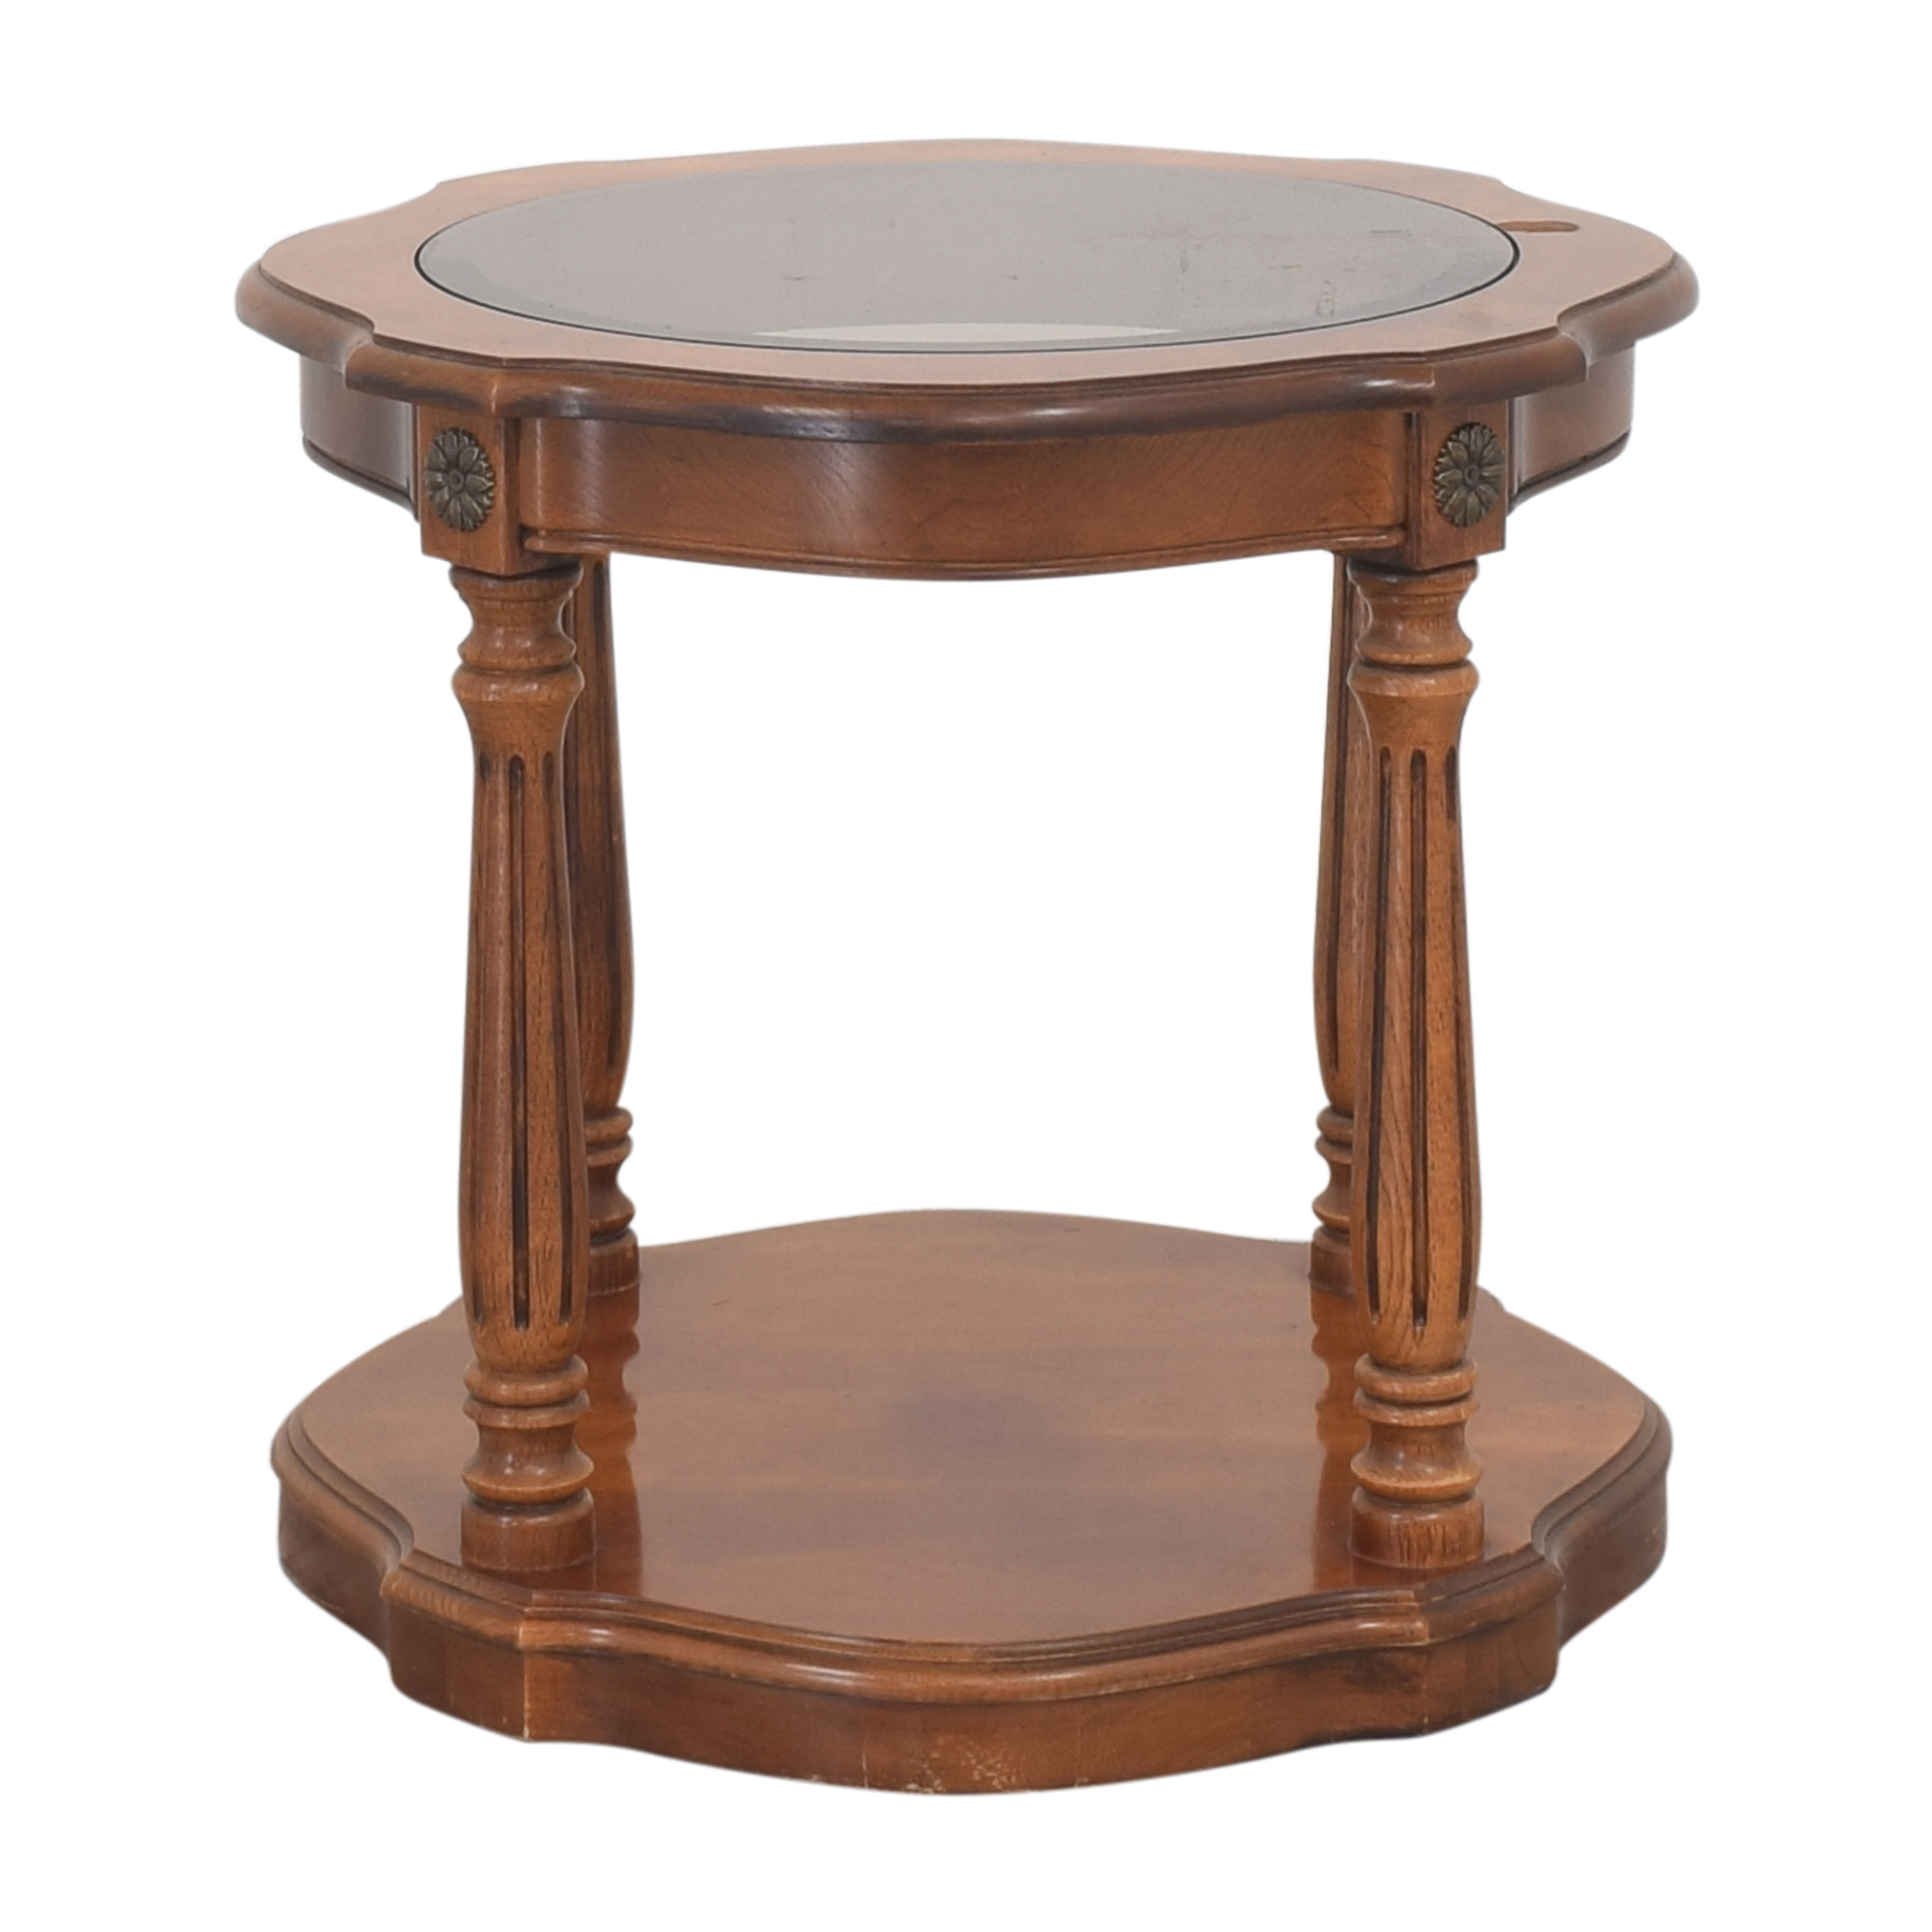 Thomasville Thomasville Lamp Table second hand